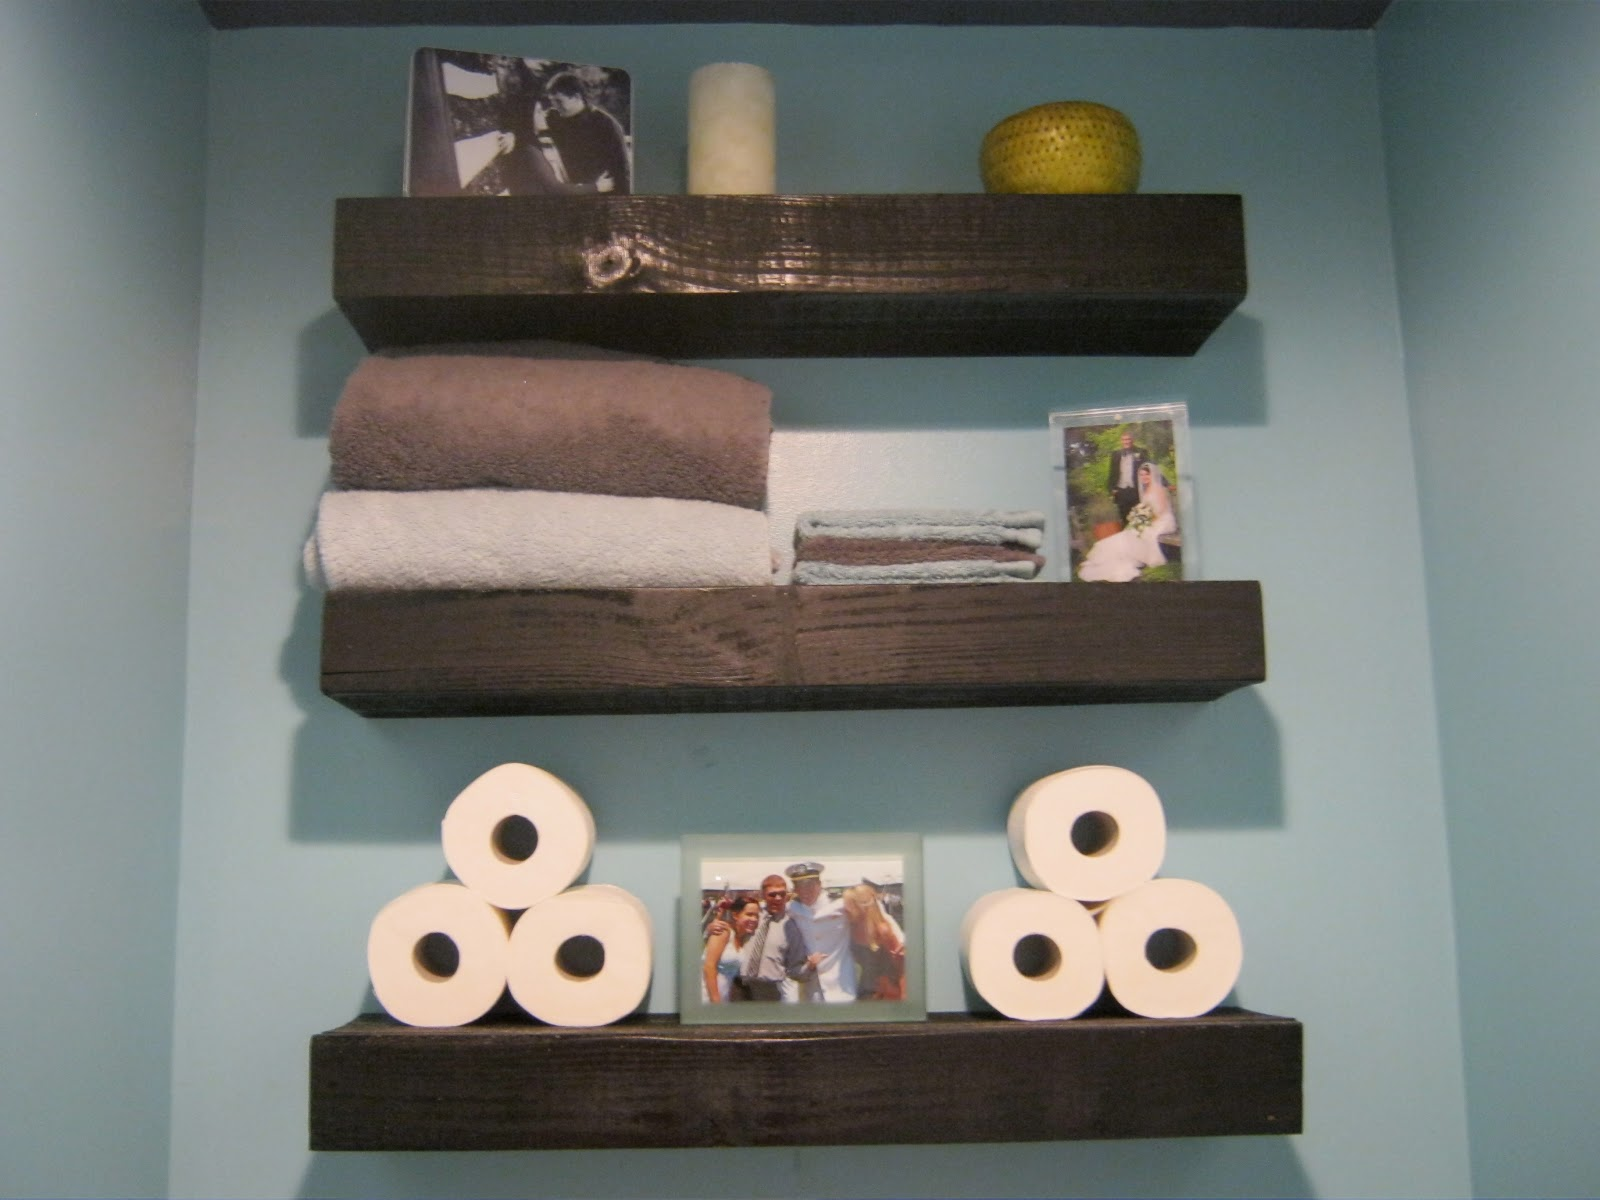 Bathroom shelves decor - And We Also Installed Three Shelves Above The Toilet In The Adjacent